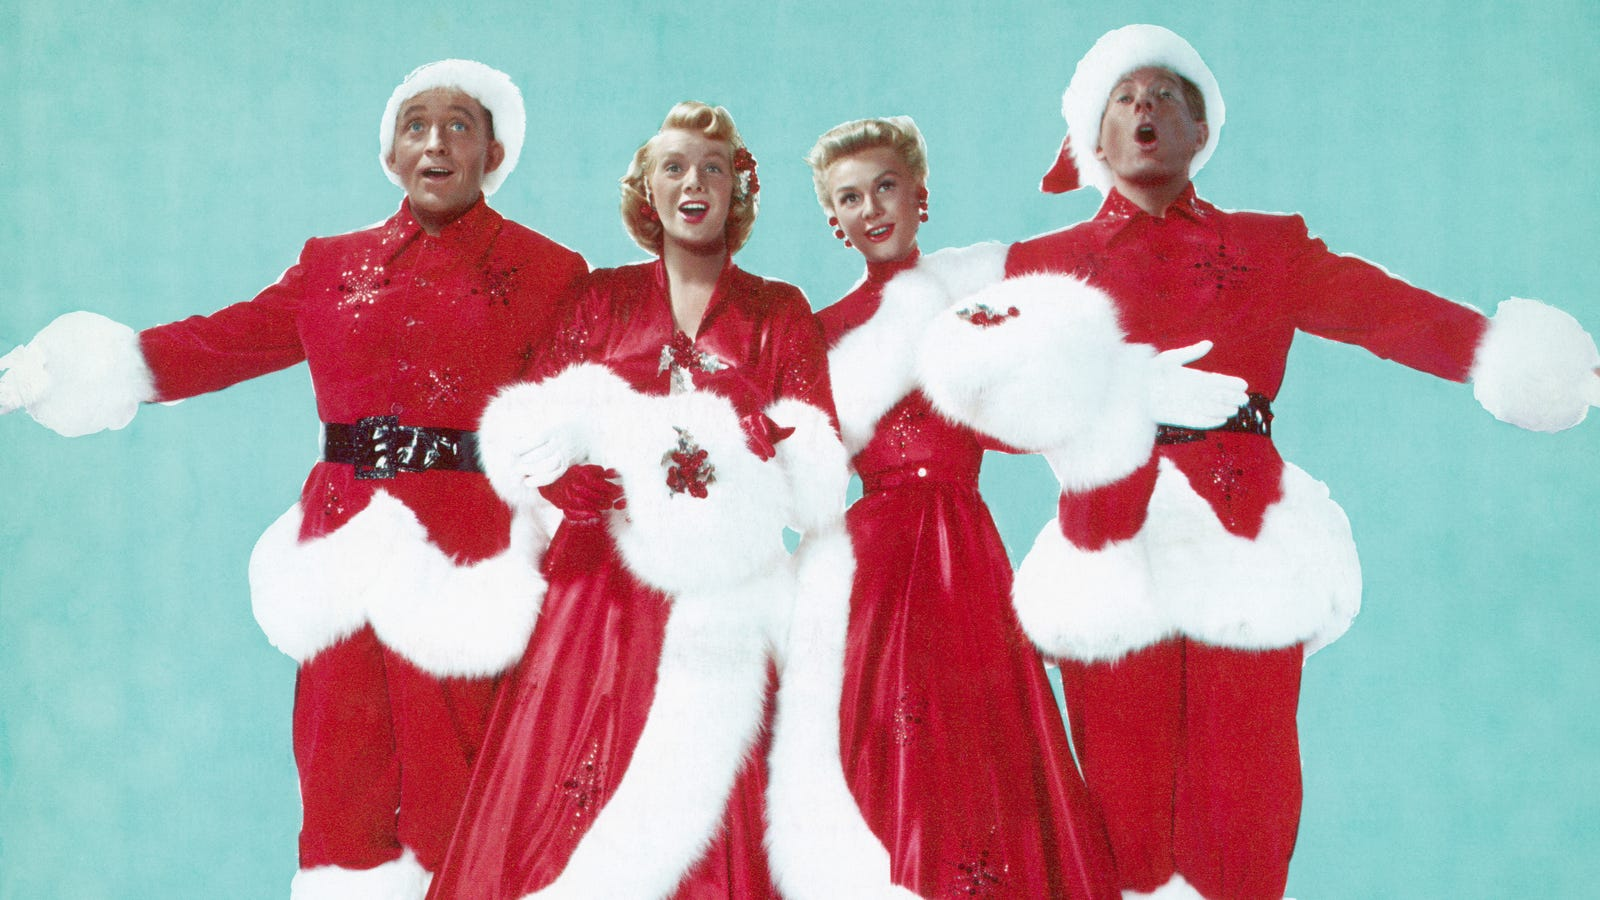 Christmas carols might actually be good, says NPR\'s Pop Culture ...